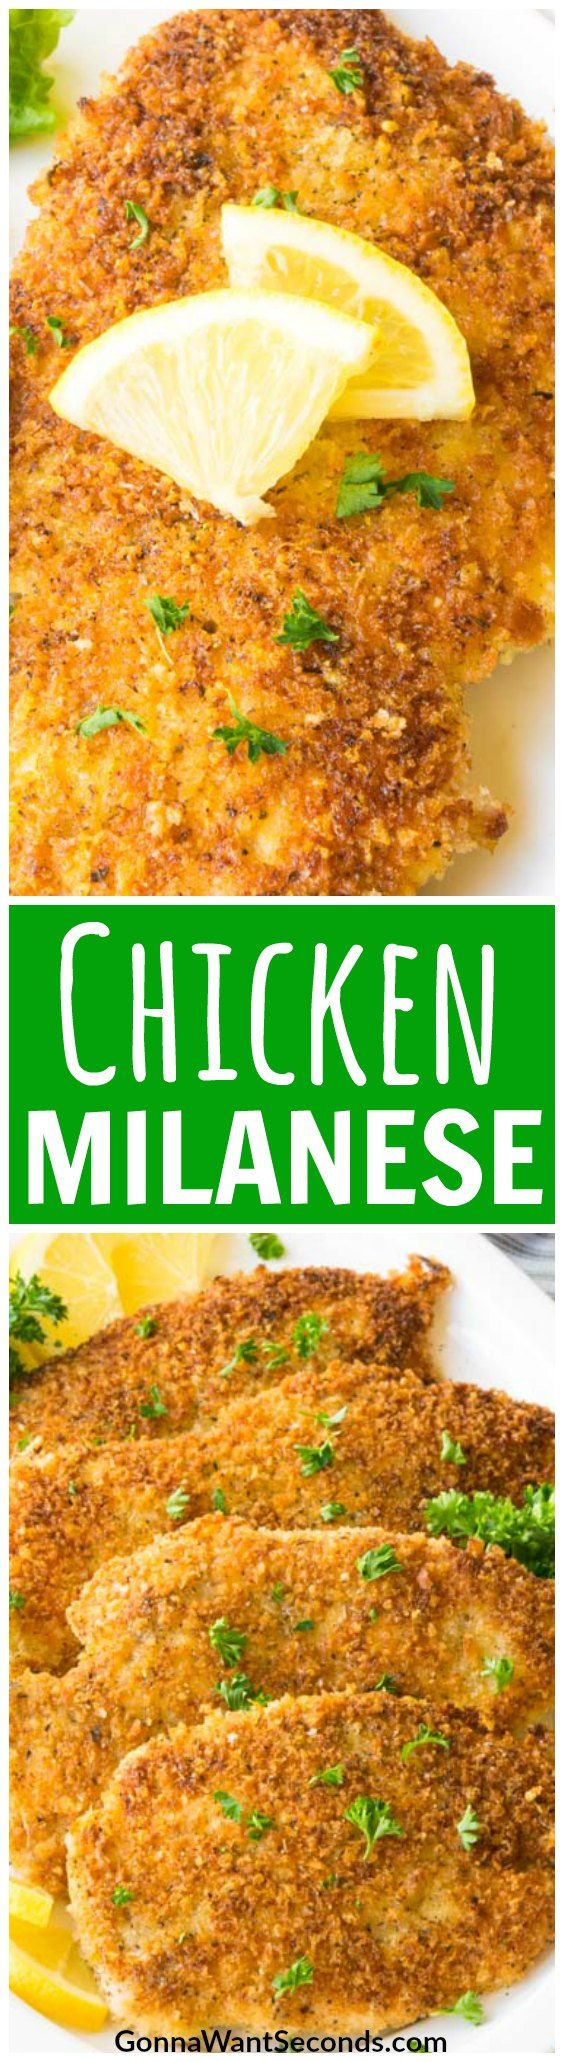 Our classic Chicken Milanese recipe makes an easy Italian dinner that your family will love. Serve with arugula salad and spaghetti and you'll have a new hit in your meal rotation! #Recipe #WithArugulaSalad #Italian #Pasta #Baked #Easy